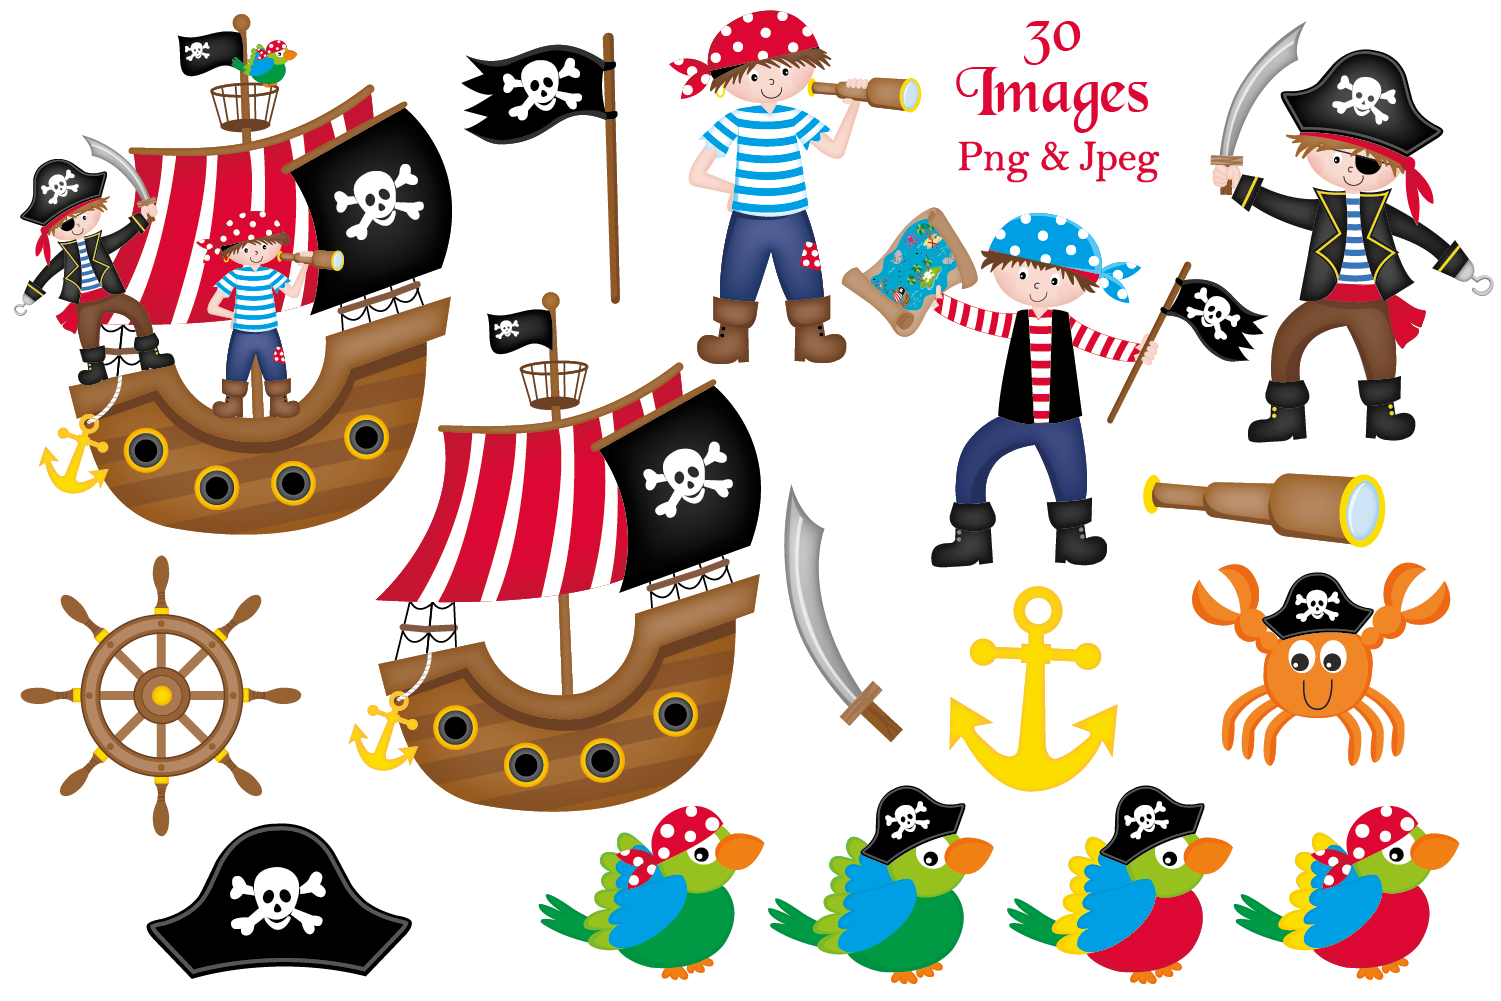 Pirate clipart pictures banner royalty free library Pirate clipart, Pirate graphics & illustrations, Pirate ship banner royalty free library